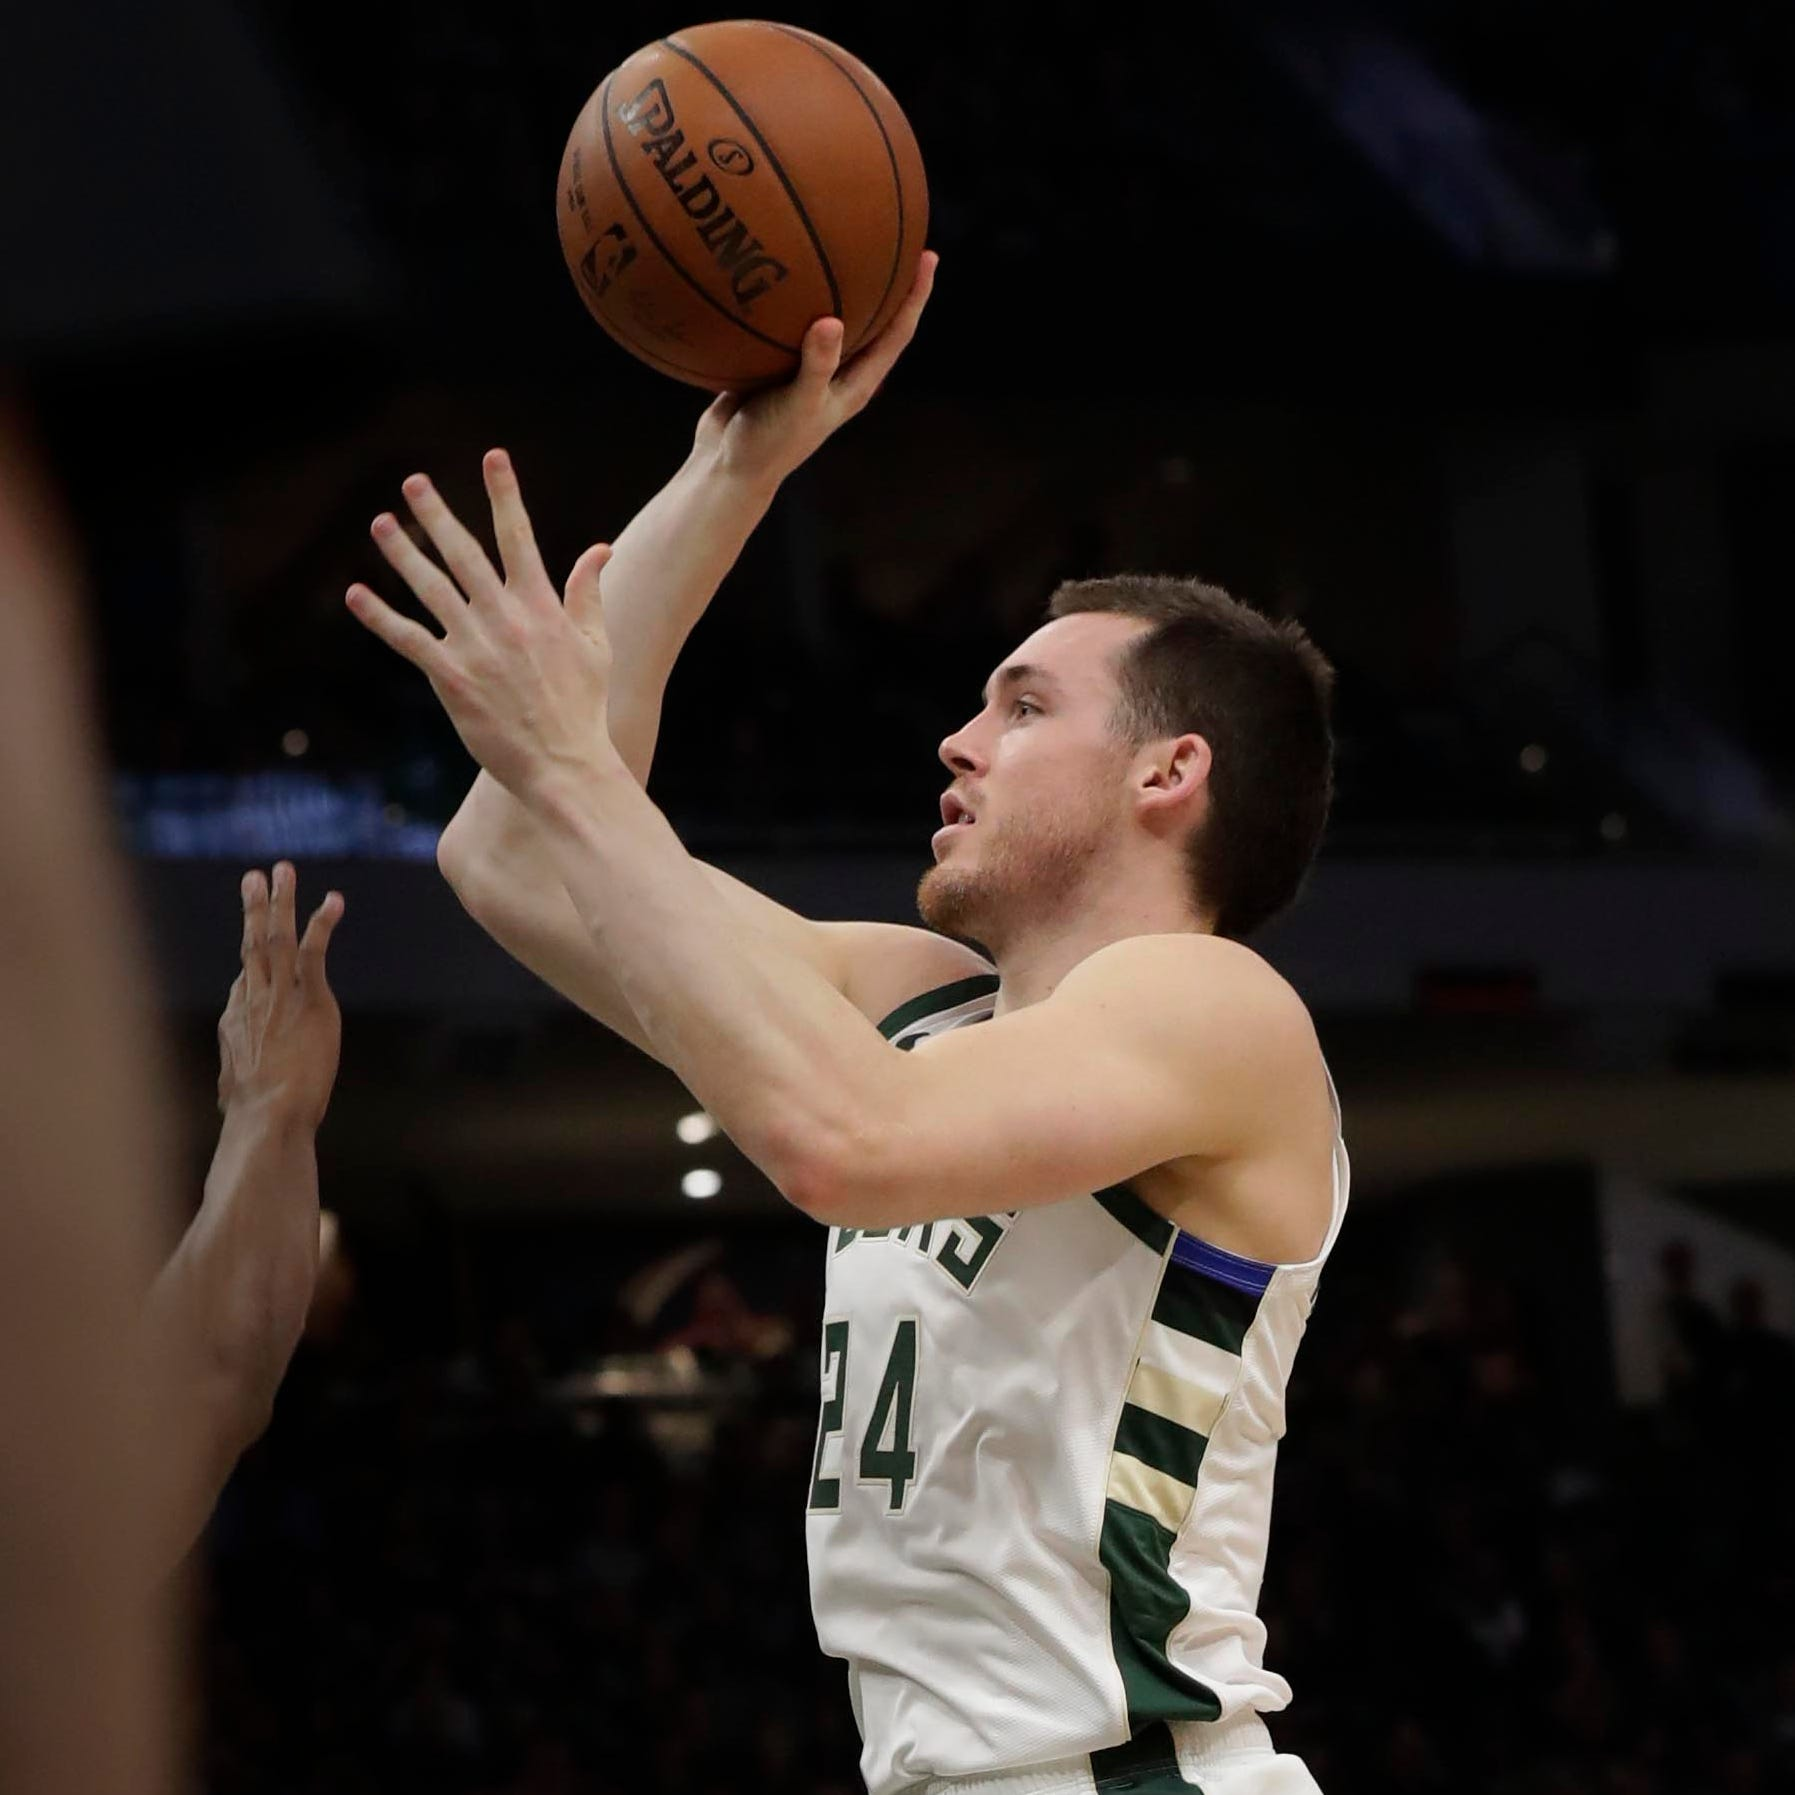 Bringing pop off the bench, Pat Connaughton is making an impact for the Bucks in the playoffs